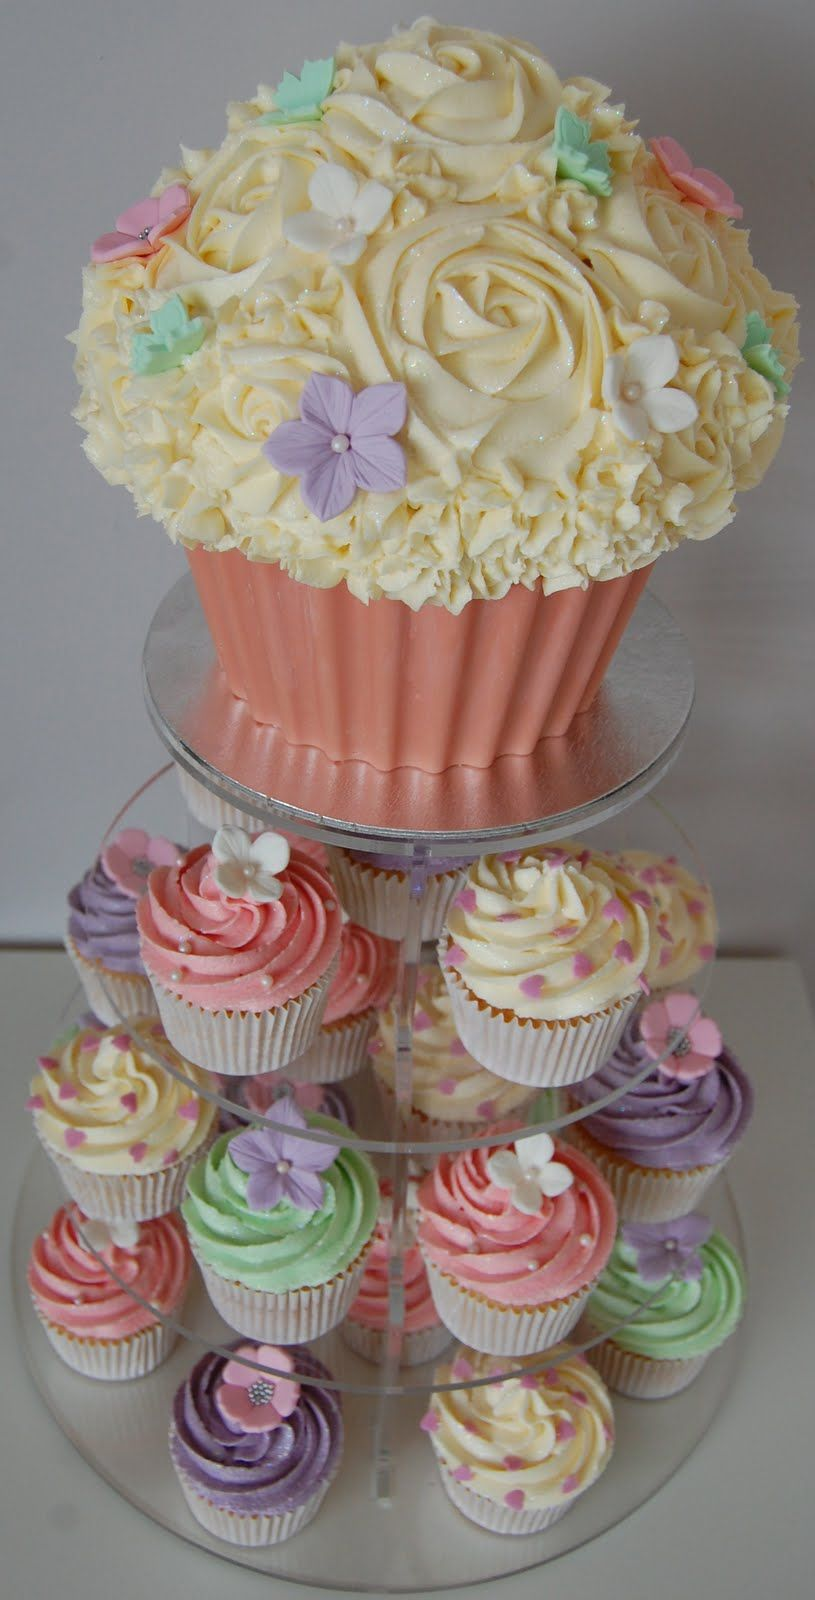 Giant Cupcake Cakes Designs | Little Paper Cakes